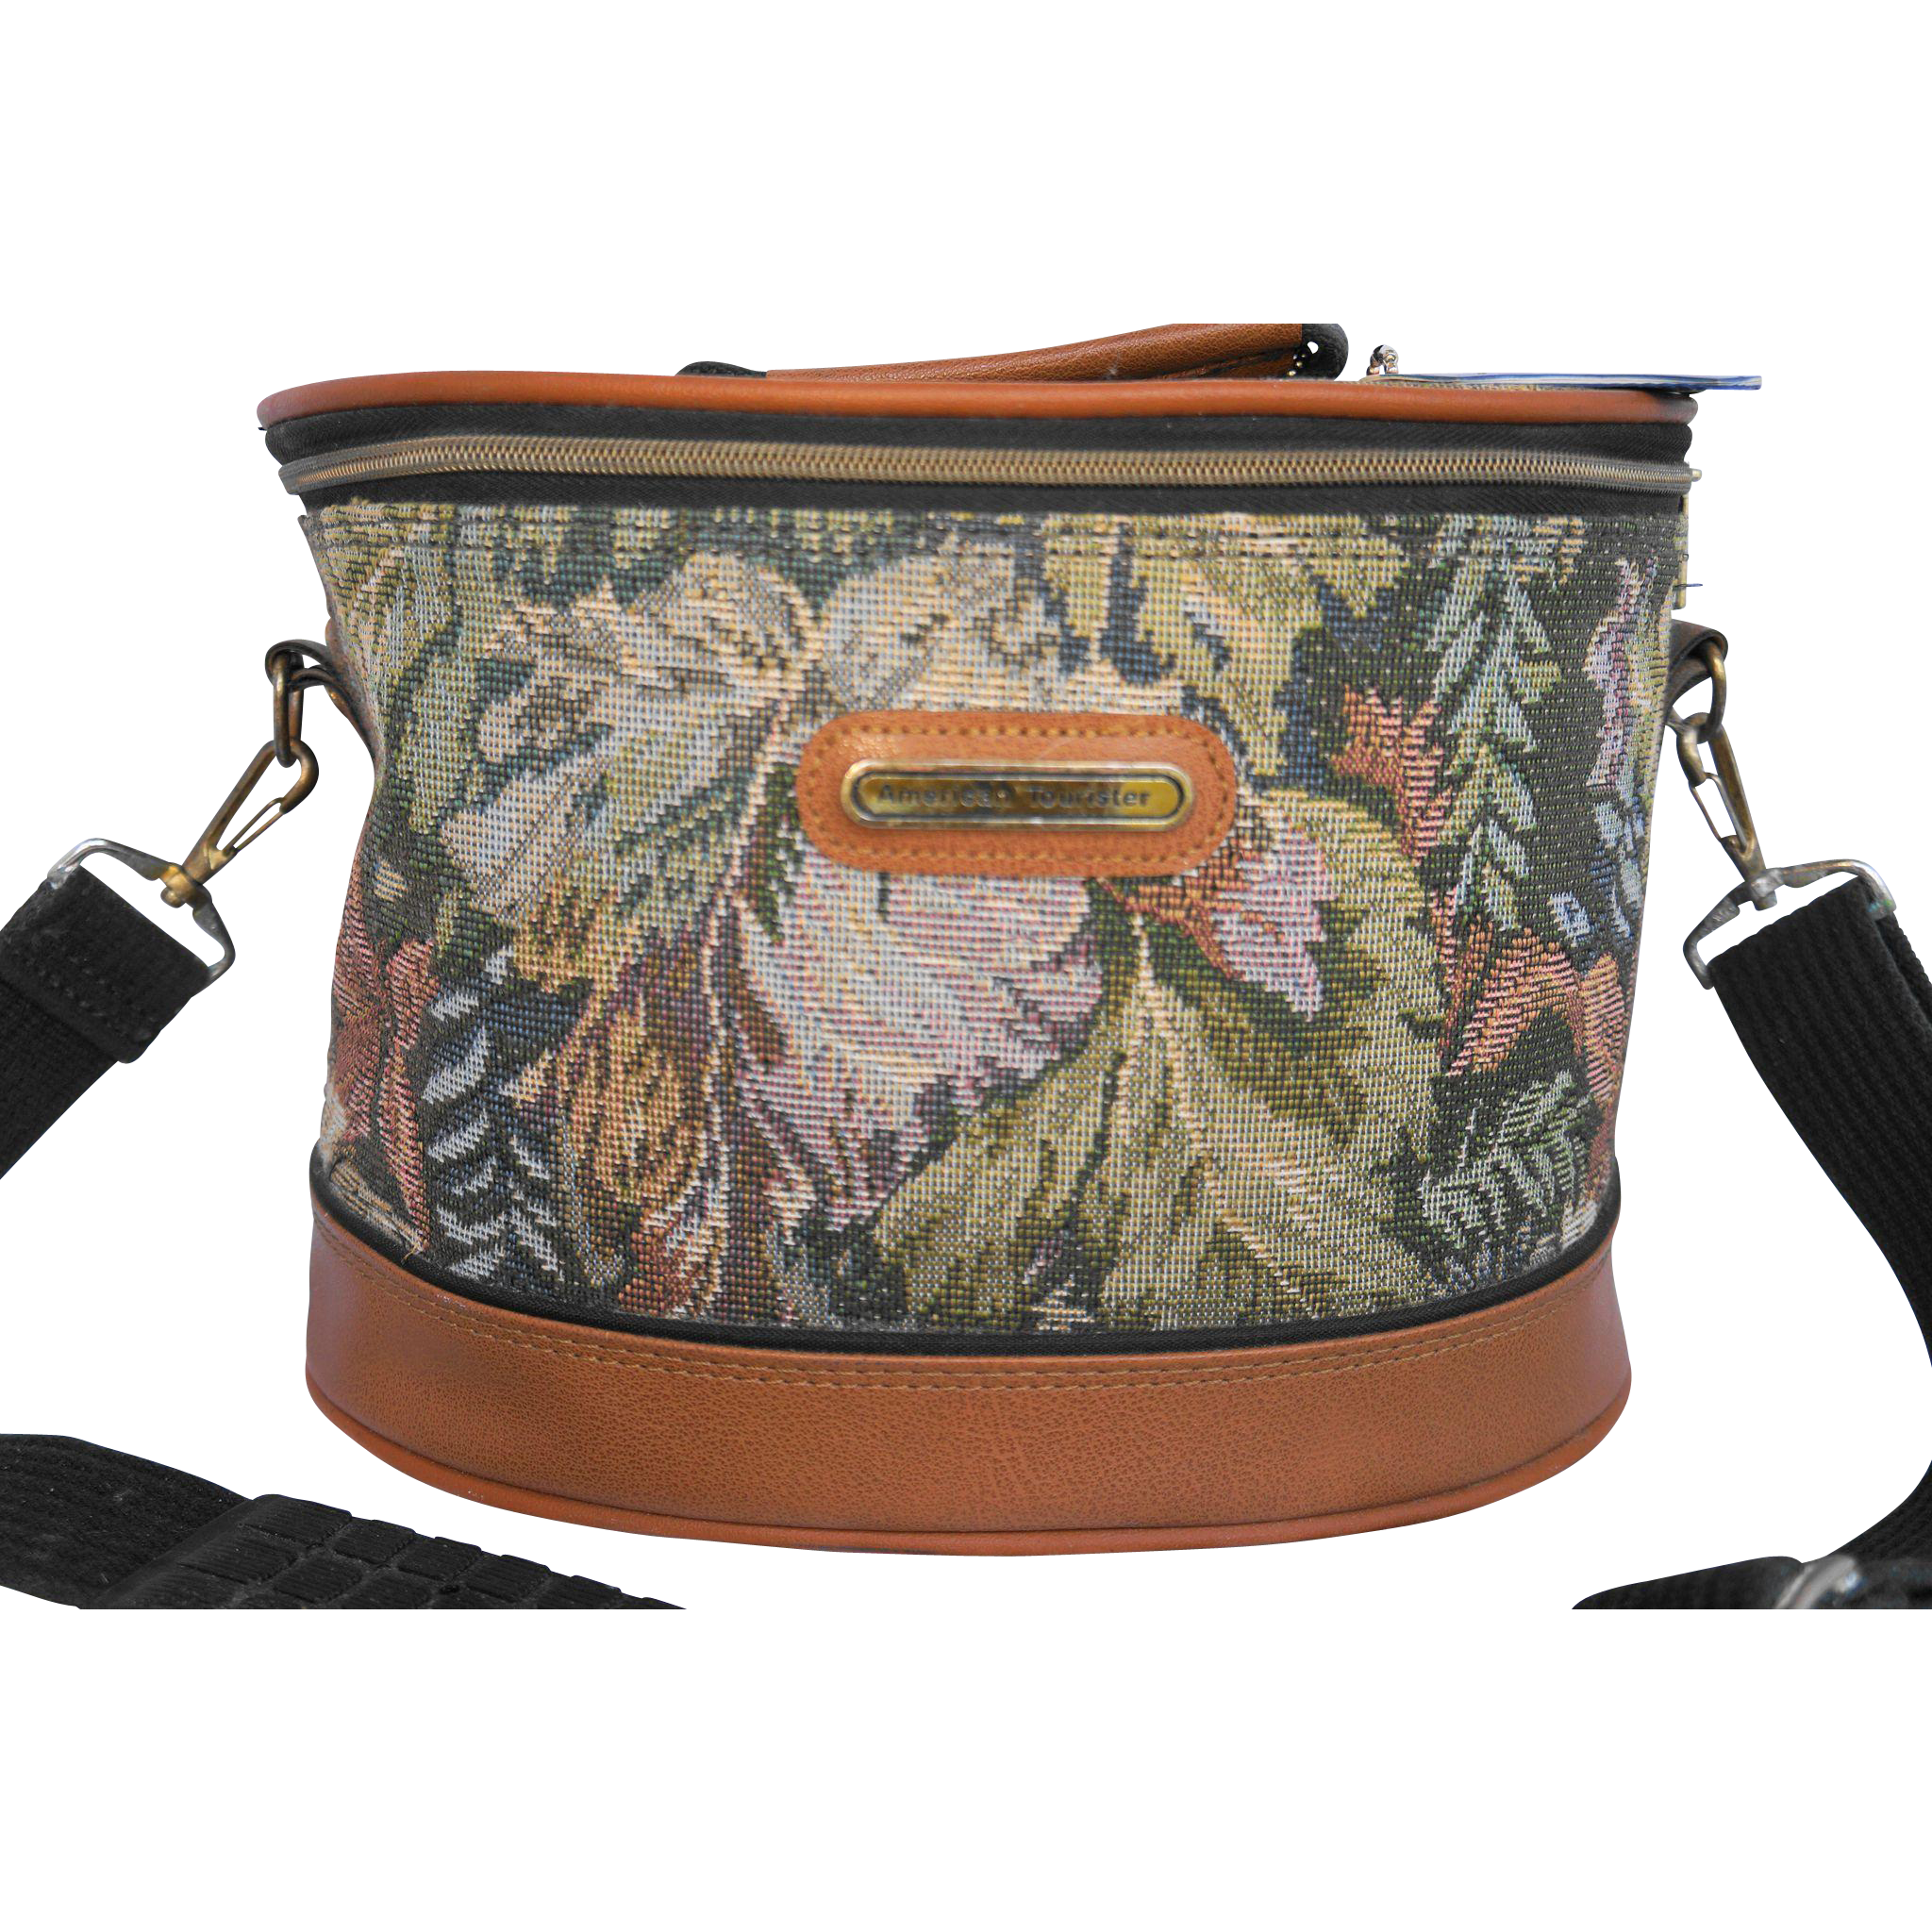 American Tourister Tapestry Oval Travel Train Case Makeup Bag Carry On Muted Fall Colors Green Brown